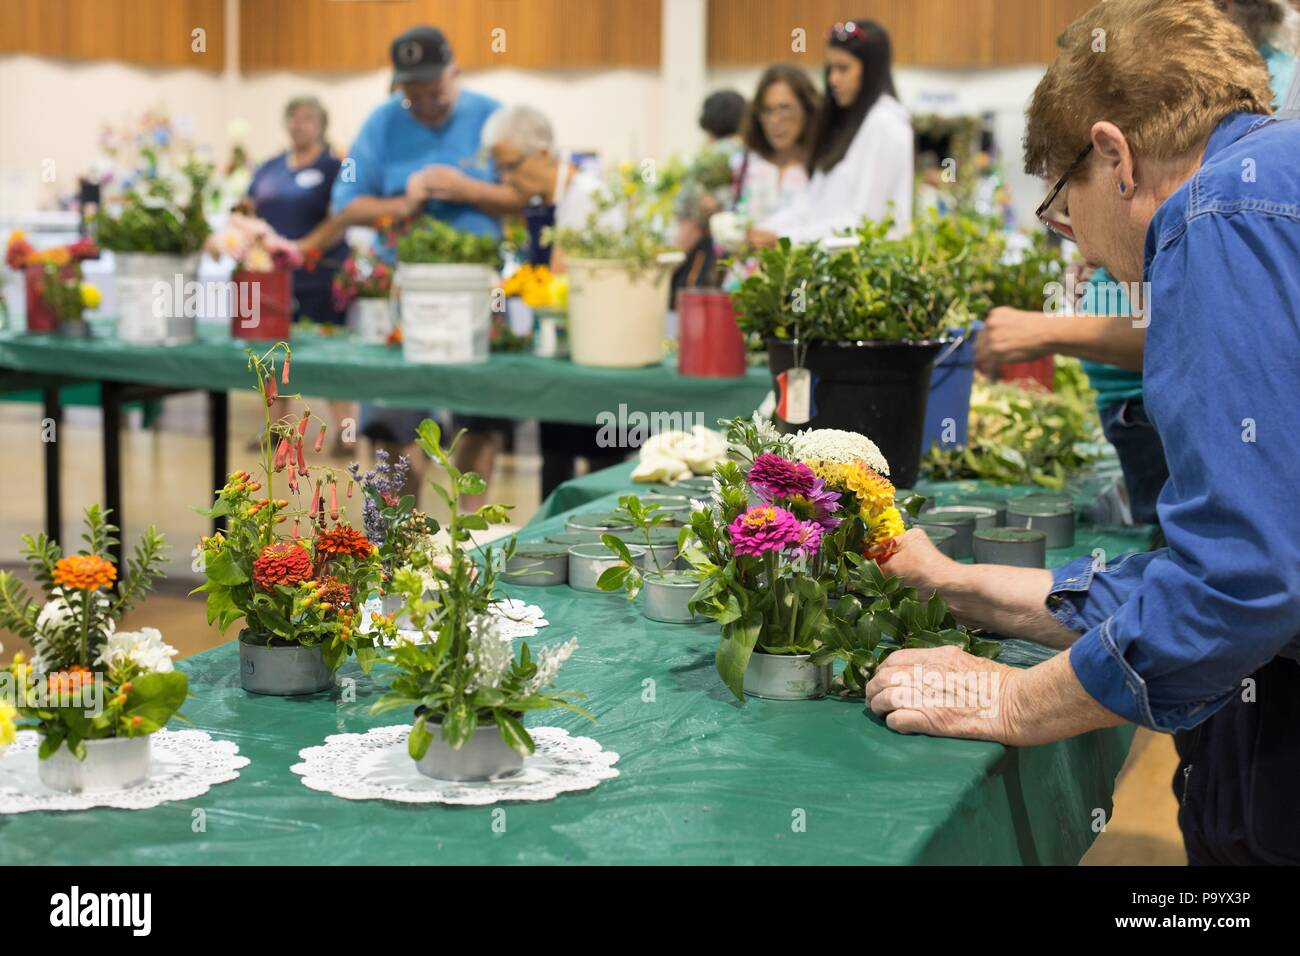 A senior woman working on a flower arrangement, at the Lane County Fair in Eugene, Oregon, USA. - Stock Image